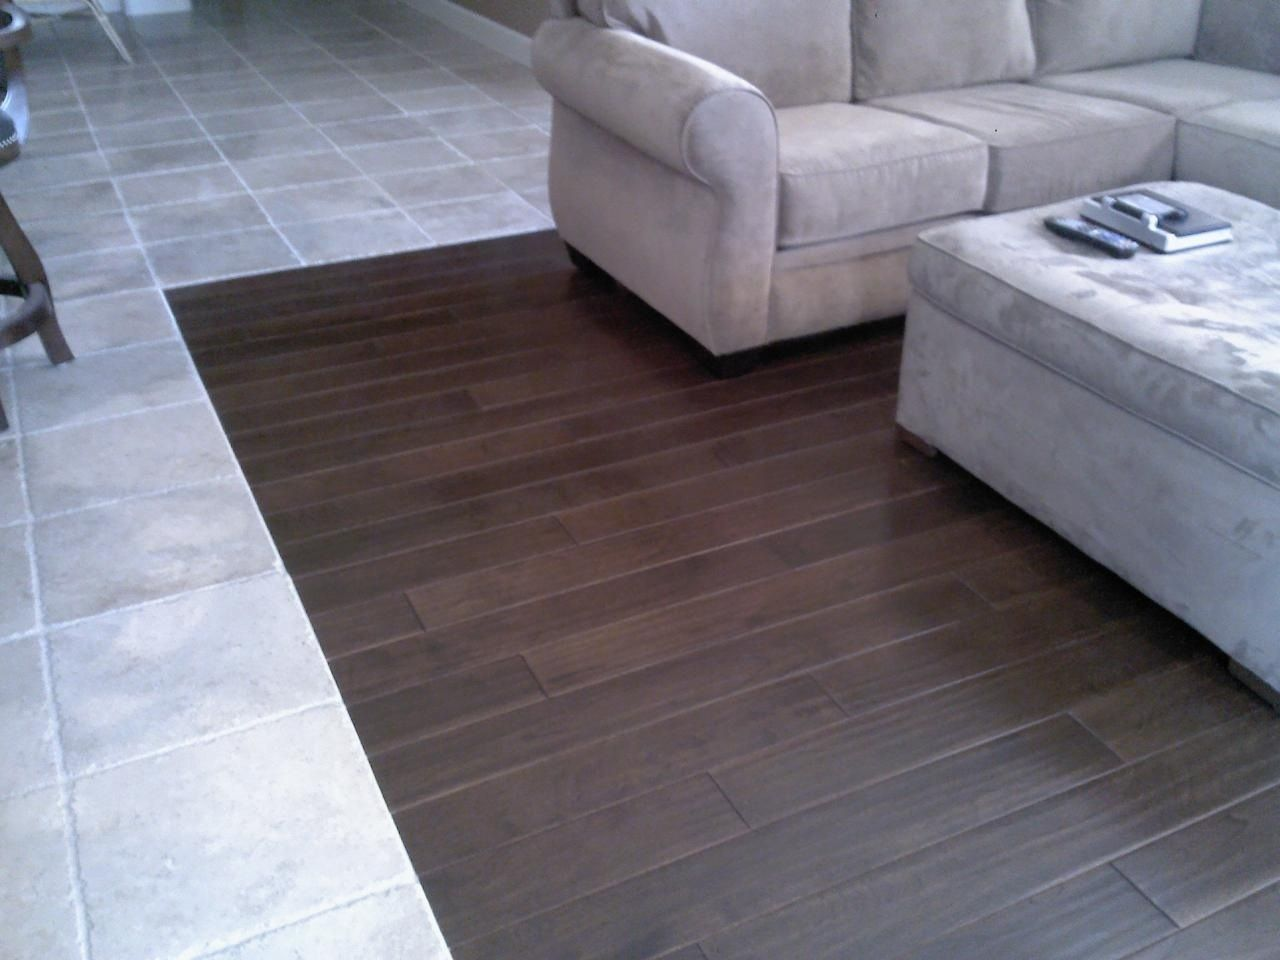 Tile to wood floor transition ideas httpviajesairmar tile to wood floor transition ideas dailygadgetfo Choice Image